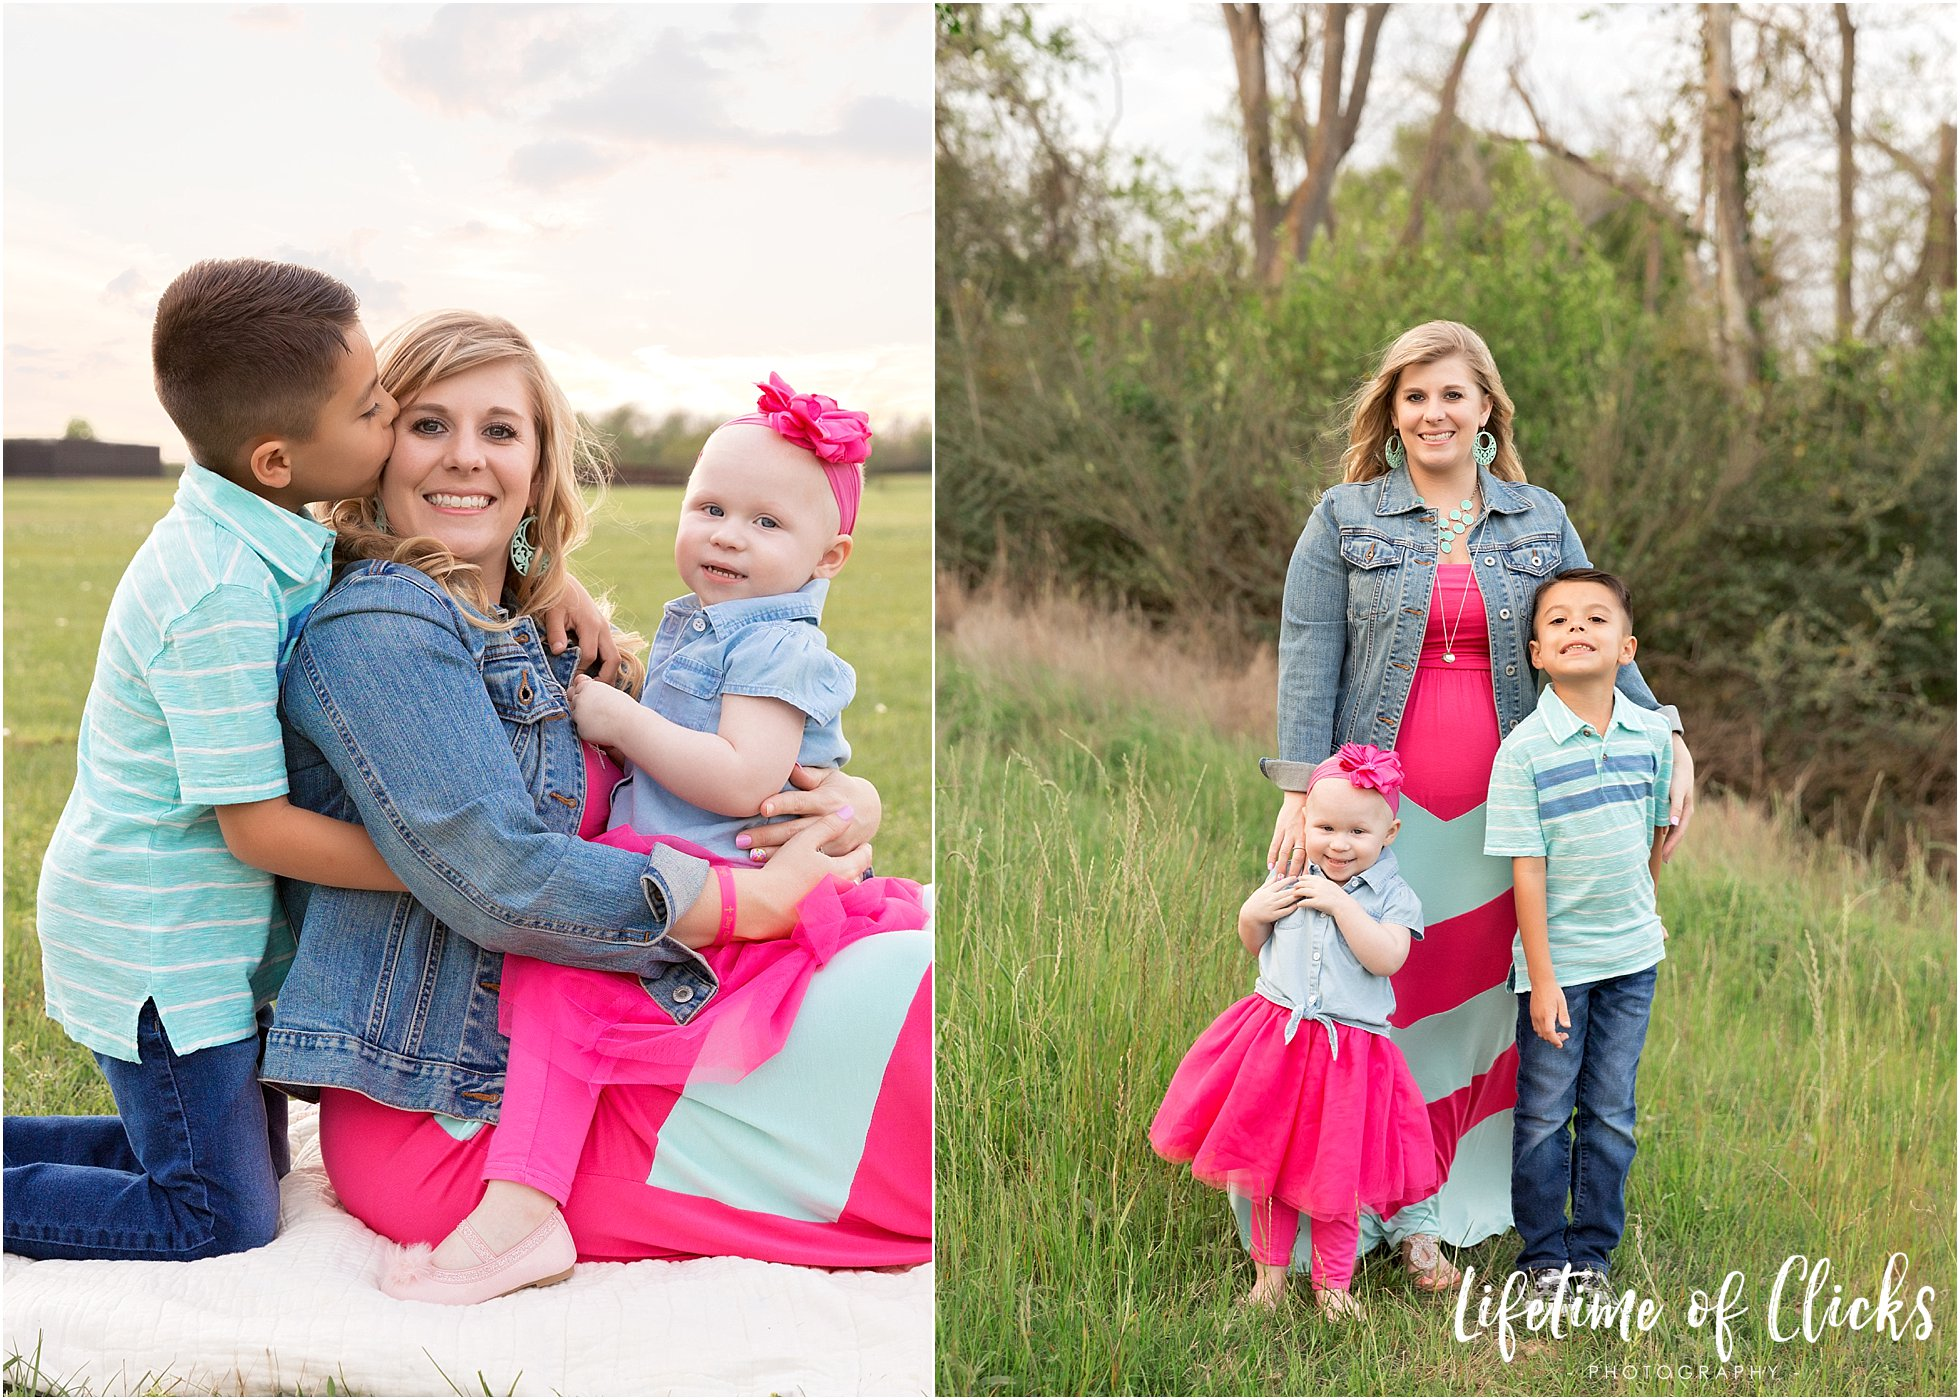 Nationally Published Photographer Lifetime of Clicks Photography captures Valerie Thompson for the Mother's Day Issue of Beauty Revived